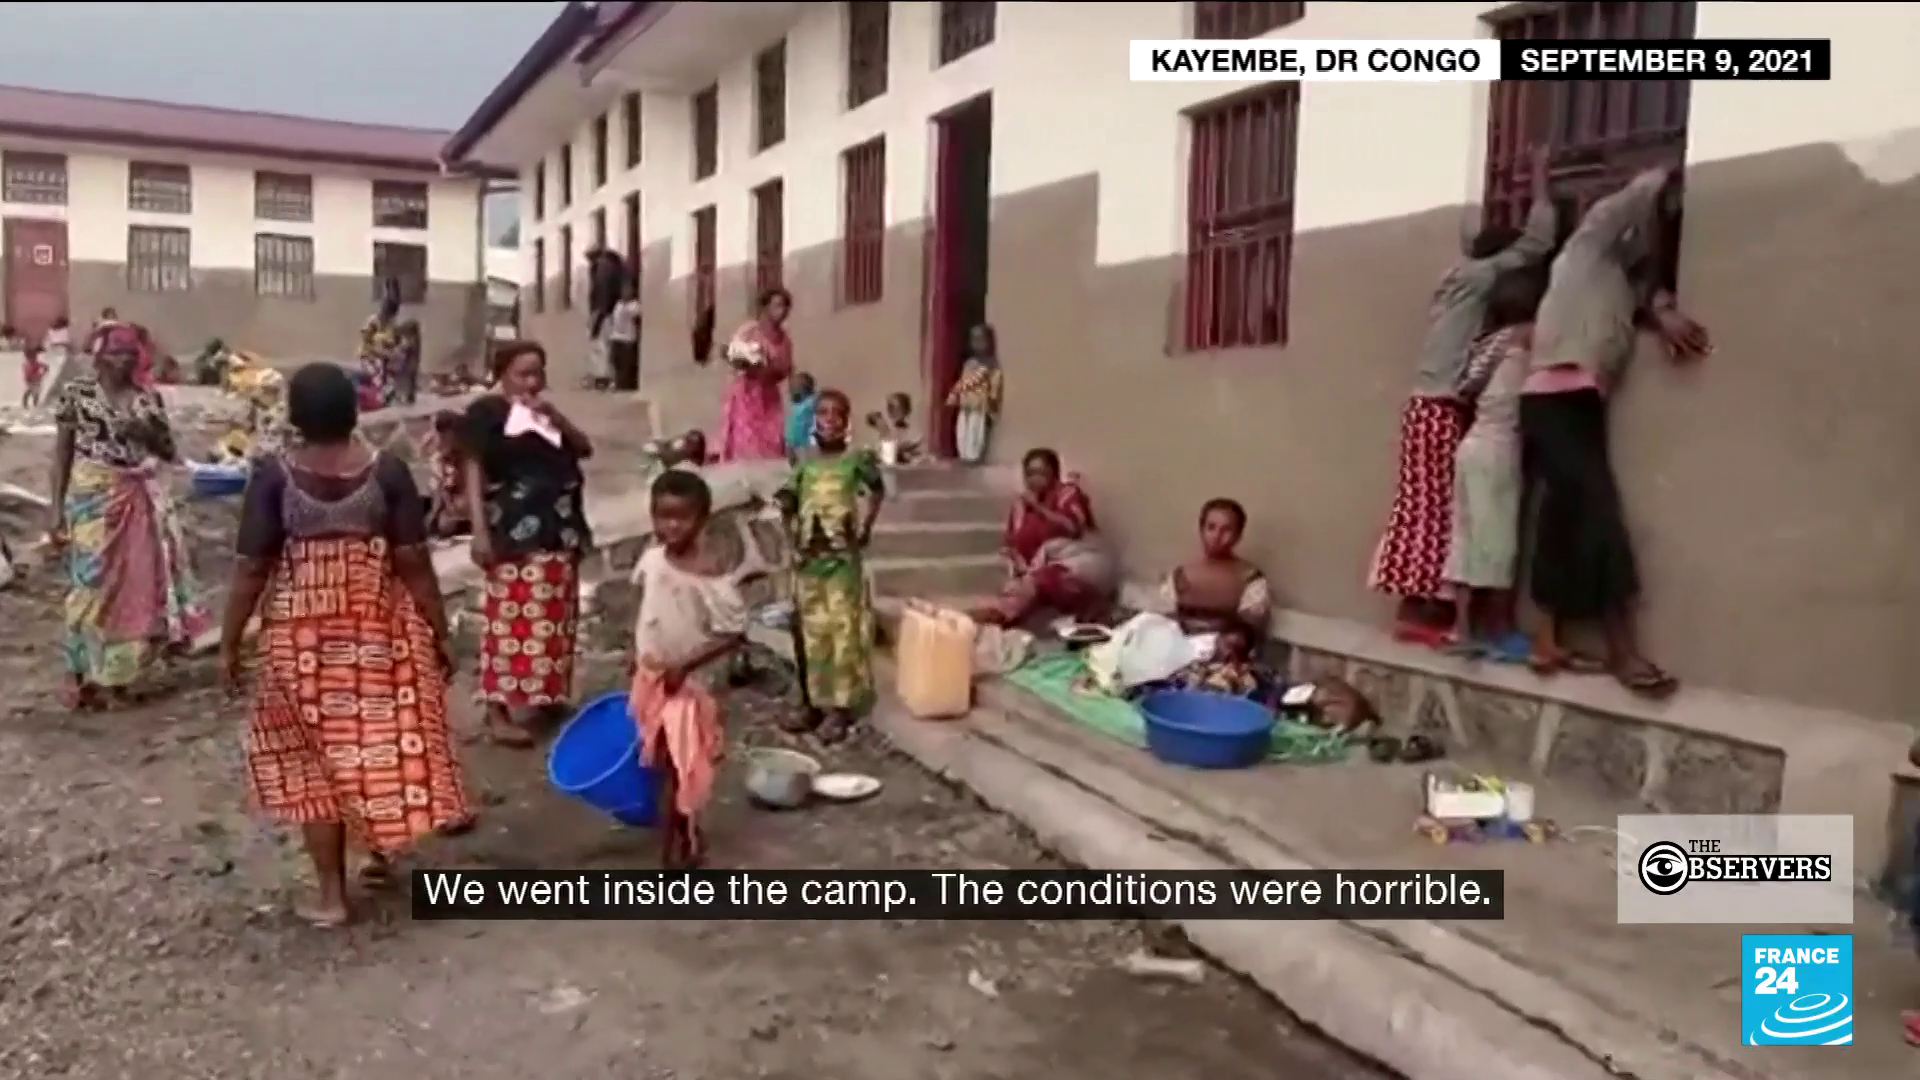 Four months after the eruption of the Nyiragongo volcano, which destroyed several neighbourhoods in the city of Goma, in the east of the Democratic Republic of Congo, thousands of victims continue to live in makeshift camps.